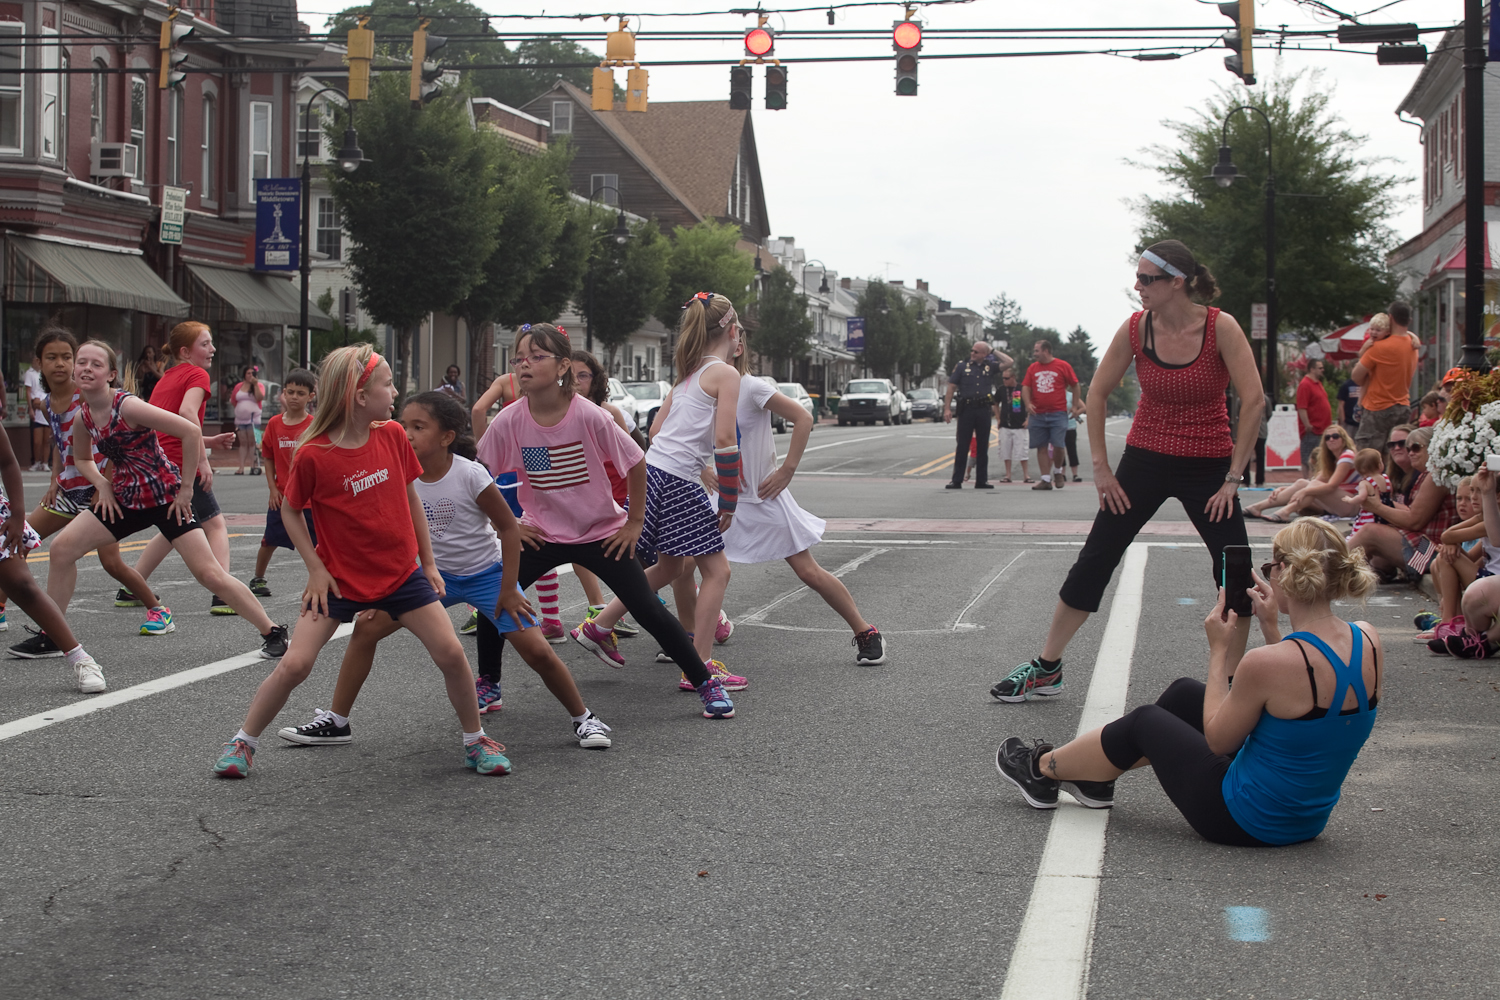 Middletown July 4th parade in Middletown, Delaware on July 4, 2015